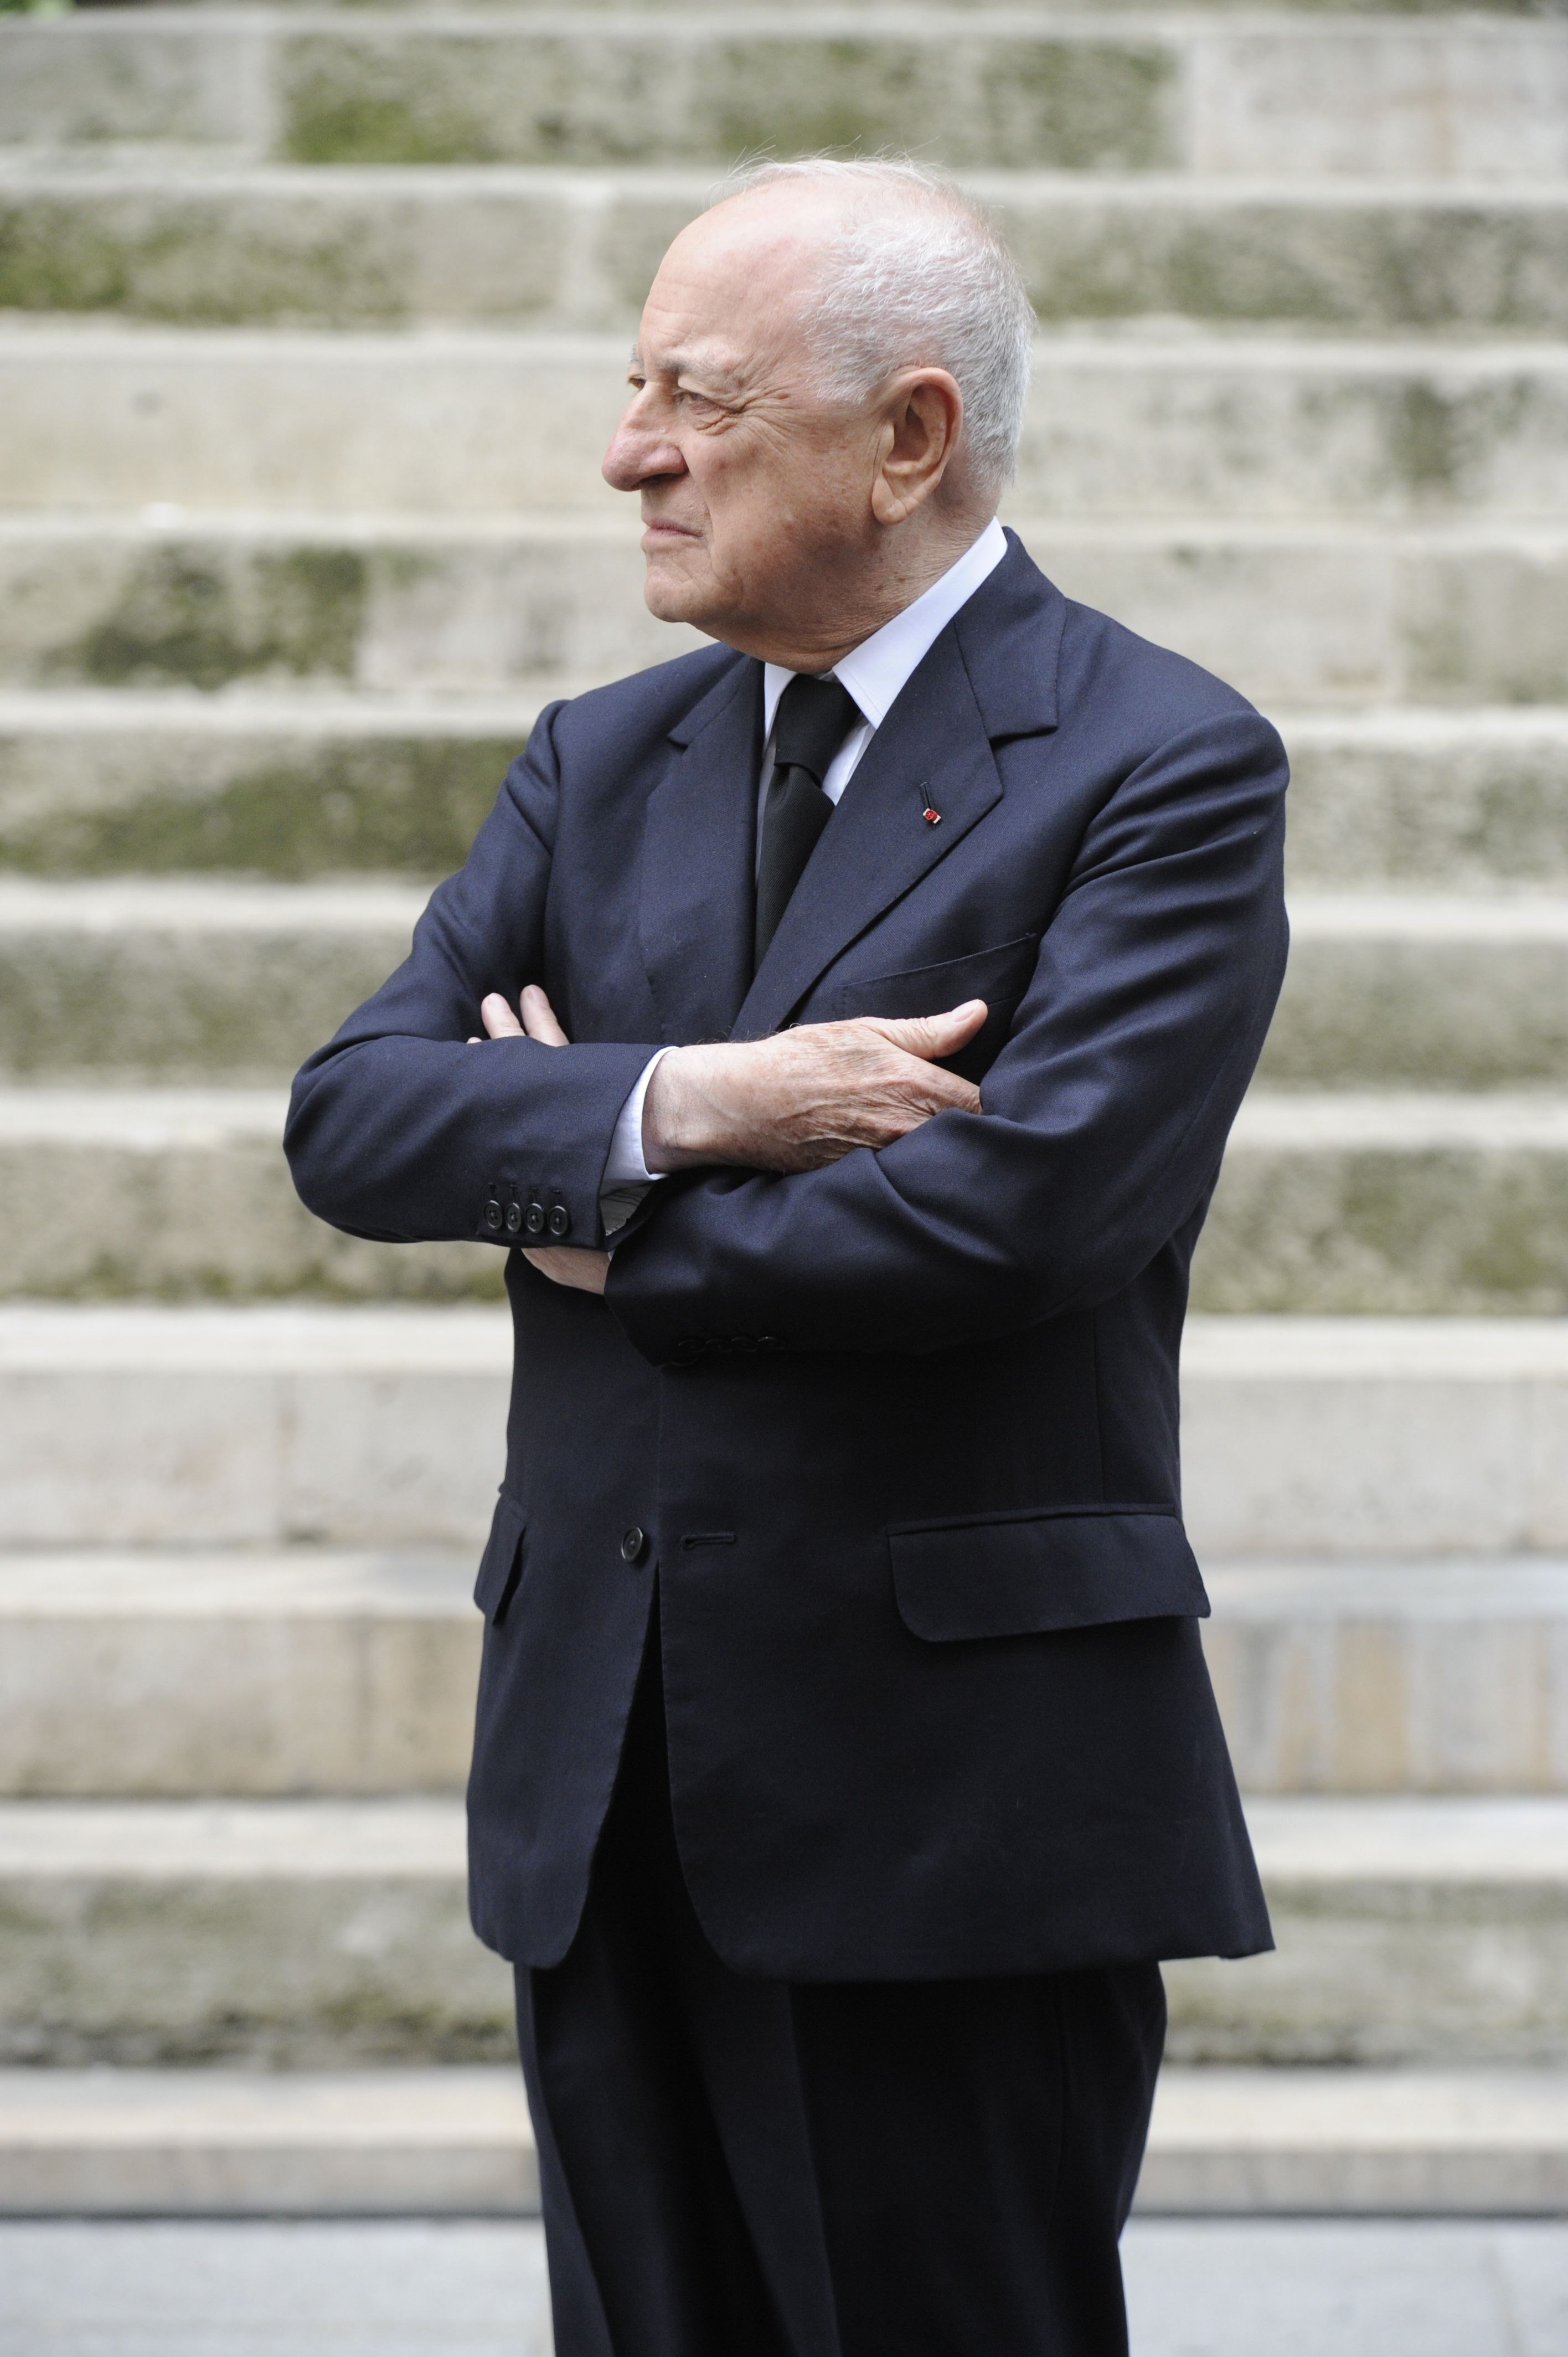 Pierre Berge attends the funeral of Yves Saint Laurent at the Eglise Saint-Roch in Paris.